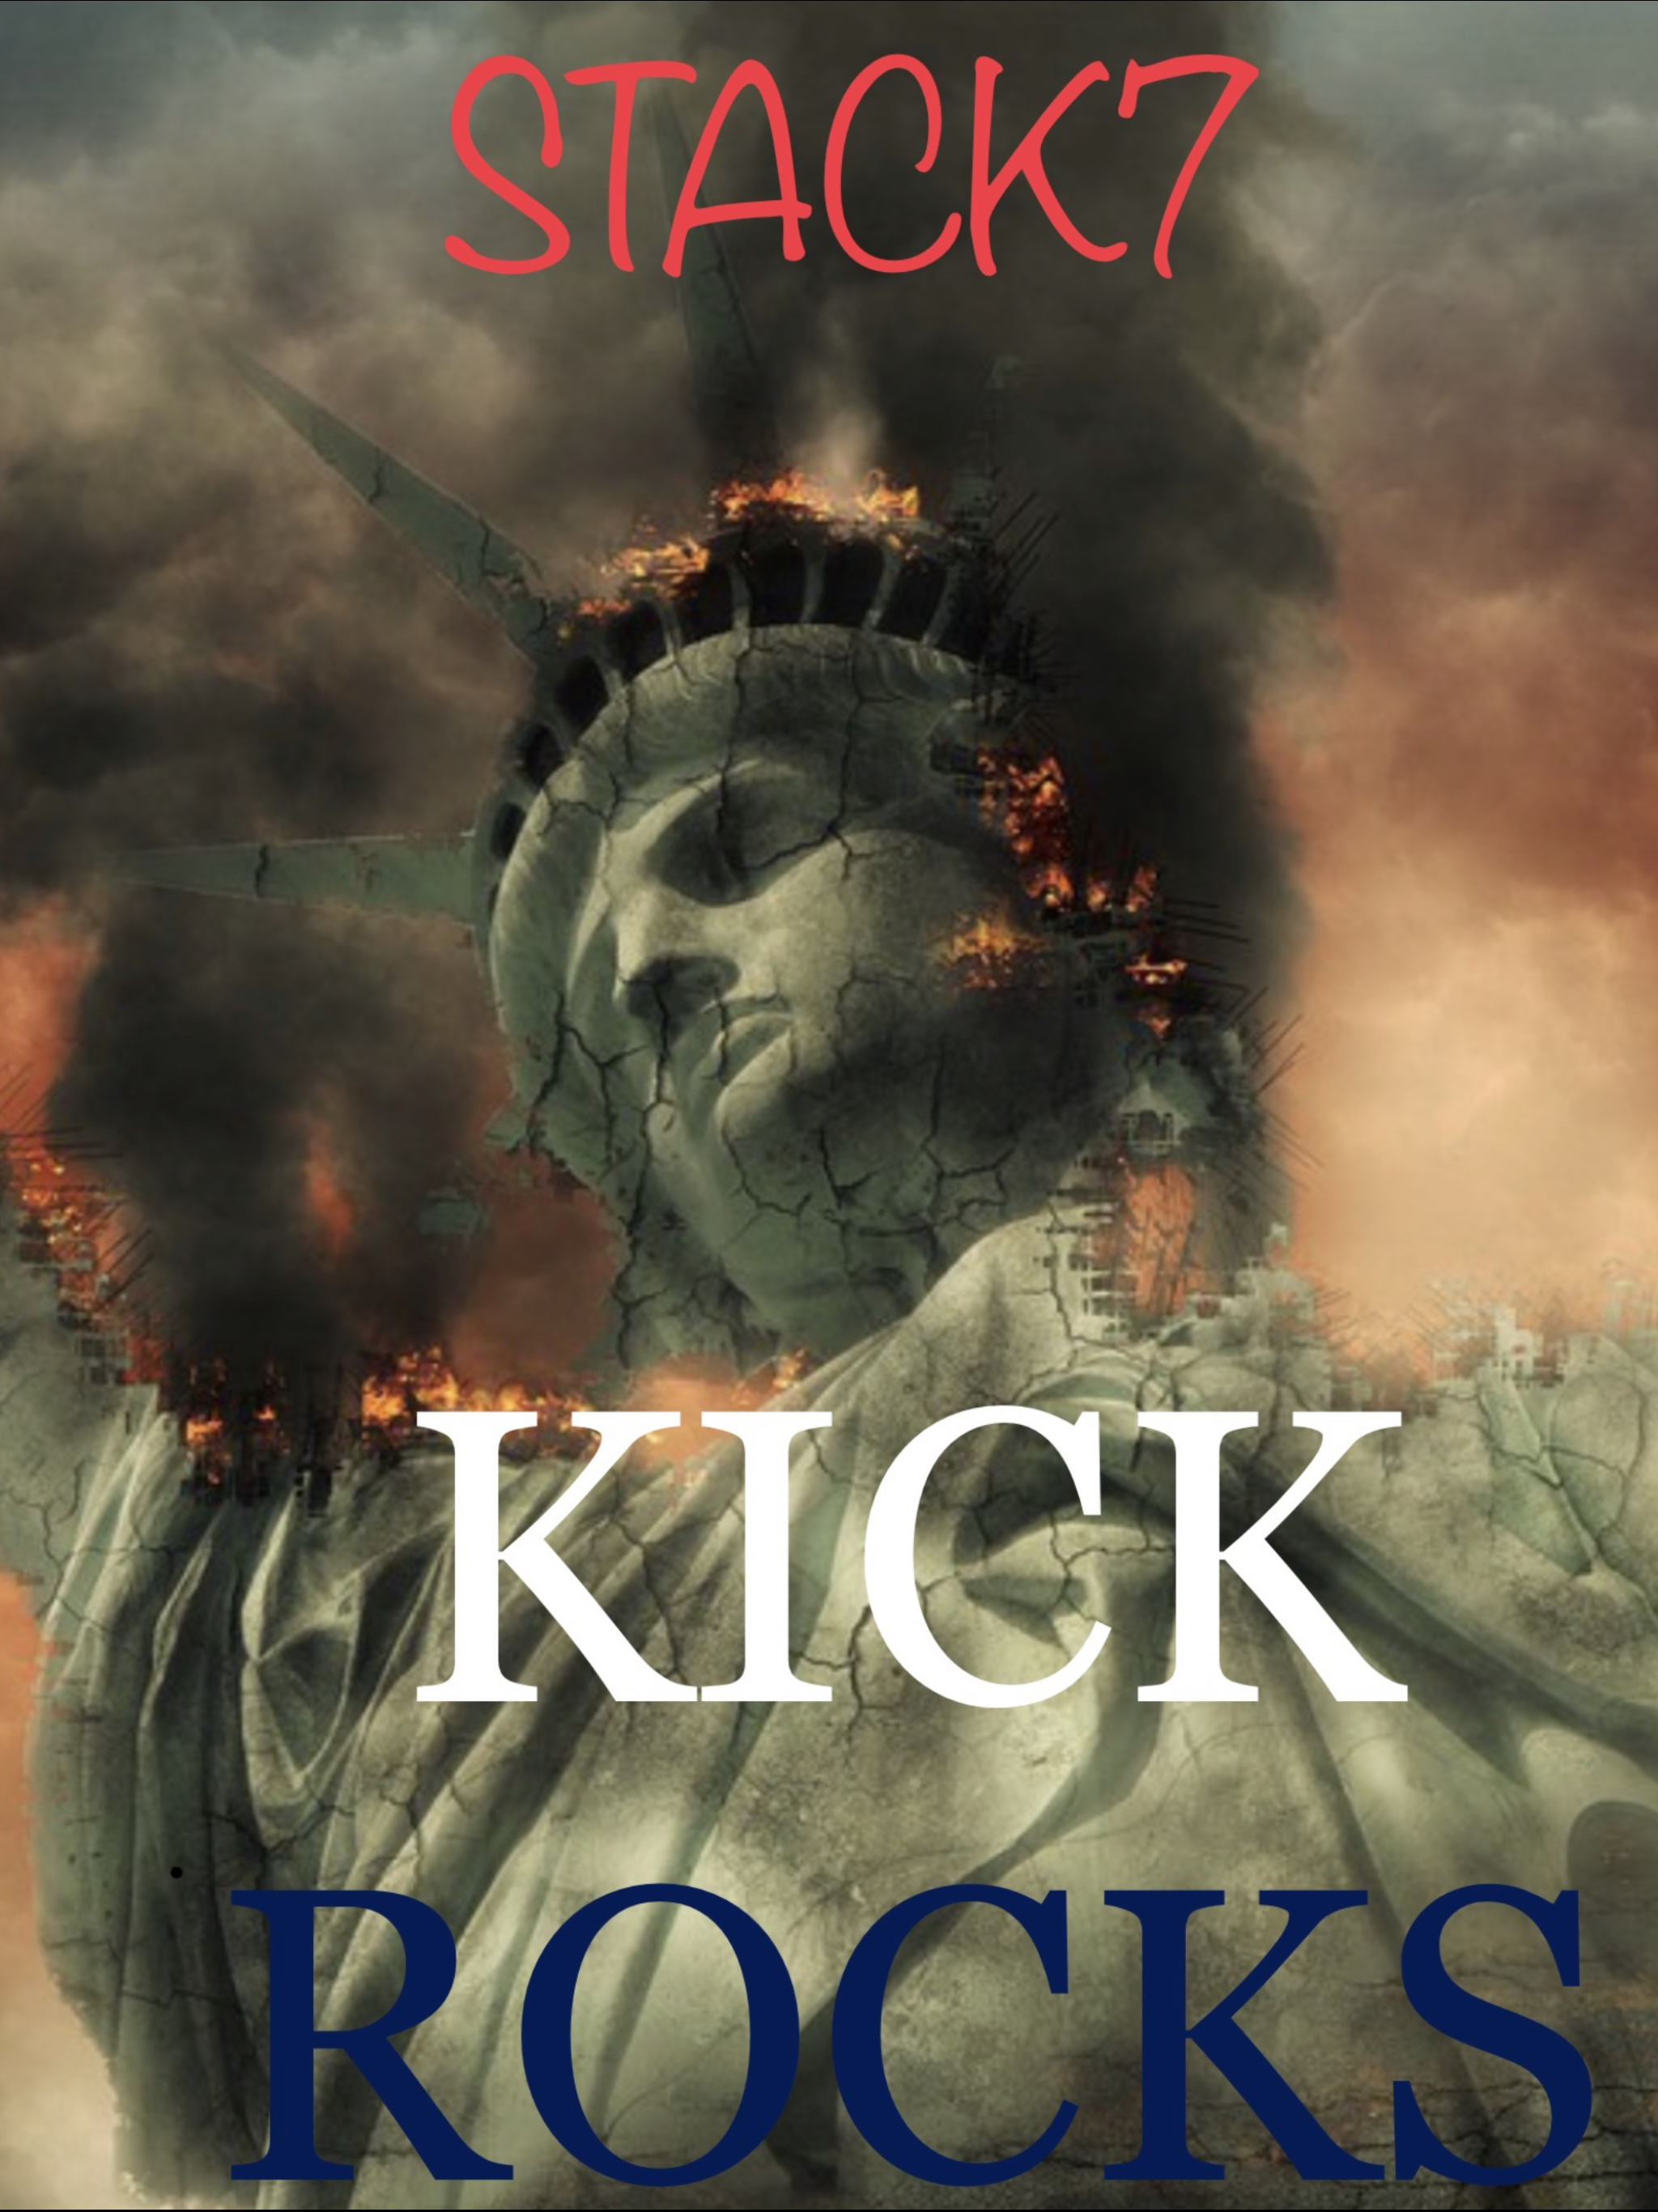 Art for Kick Rocks by STACK 7